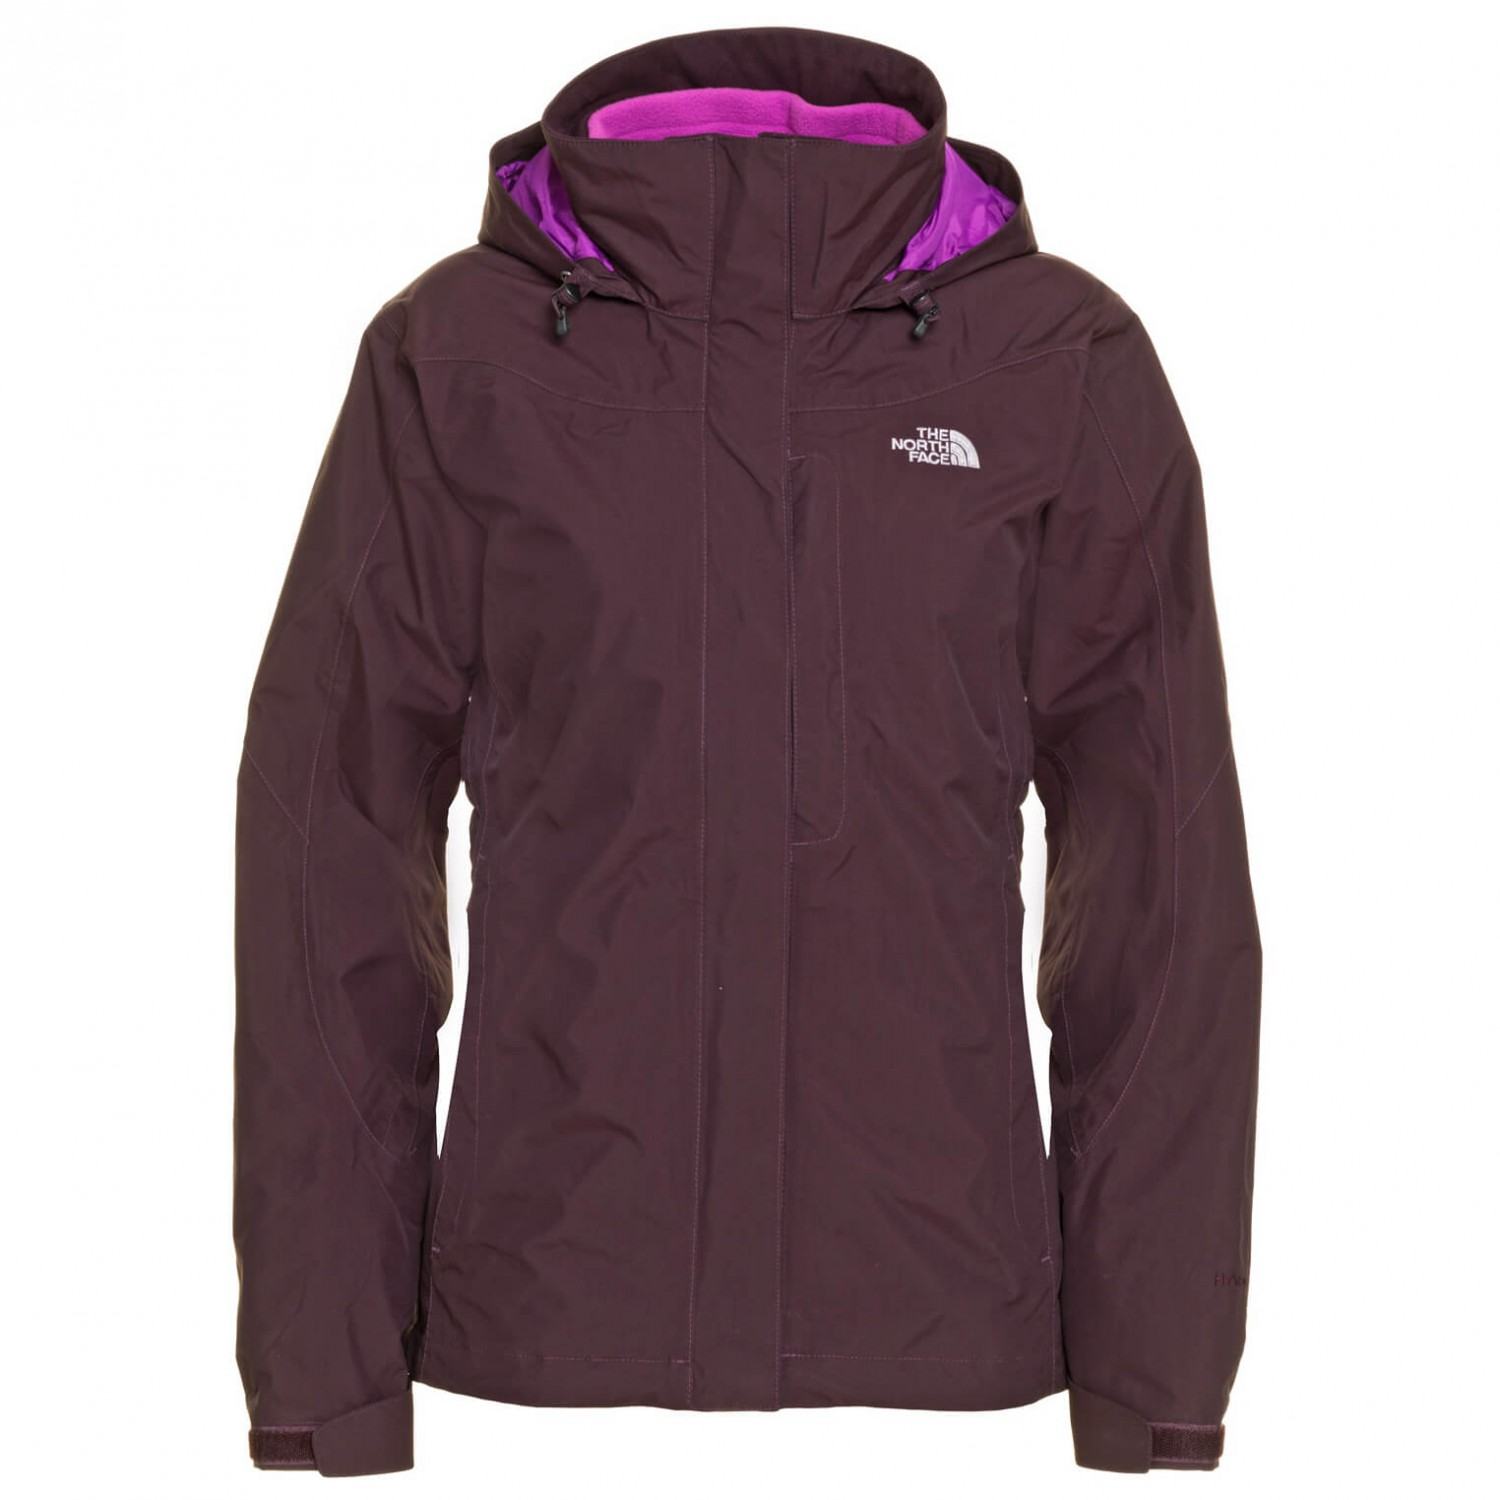 The North Face Women's Evolution TriClimate Jacket Doppeljacke